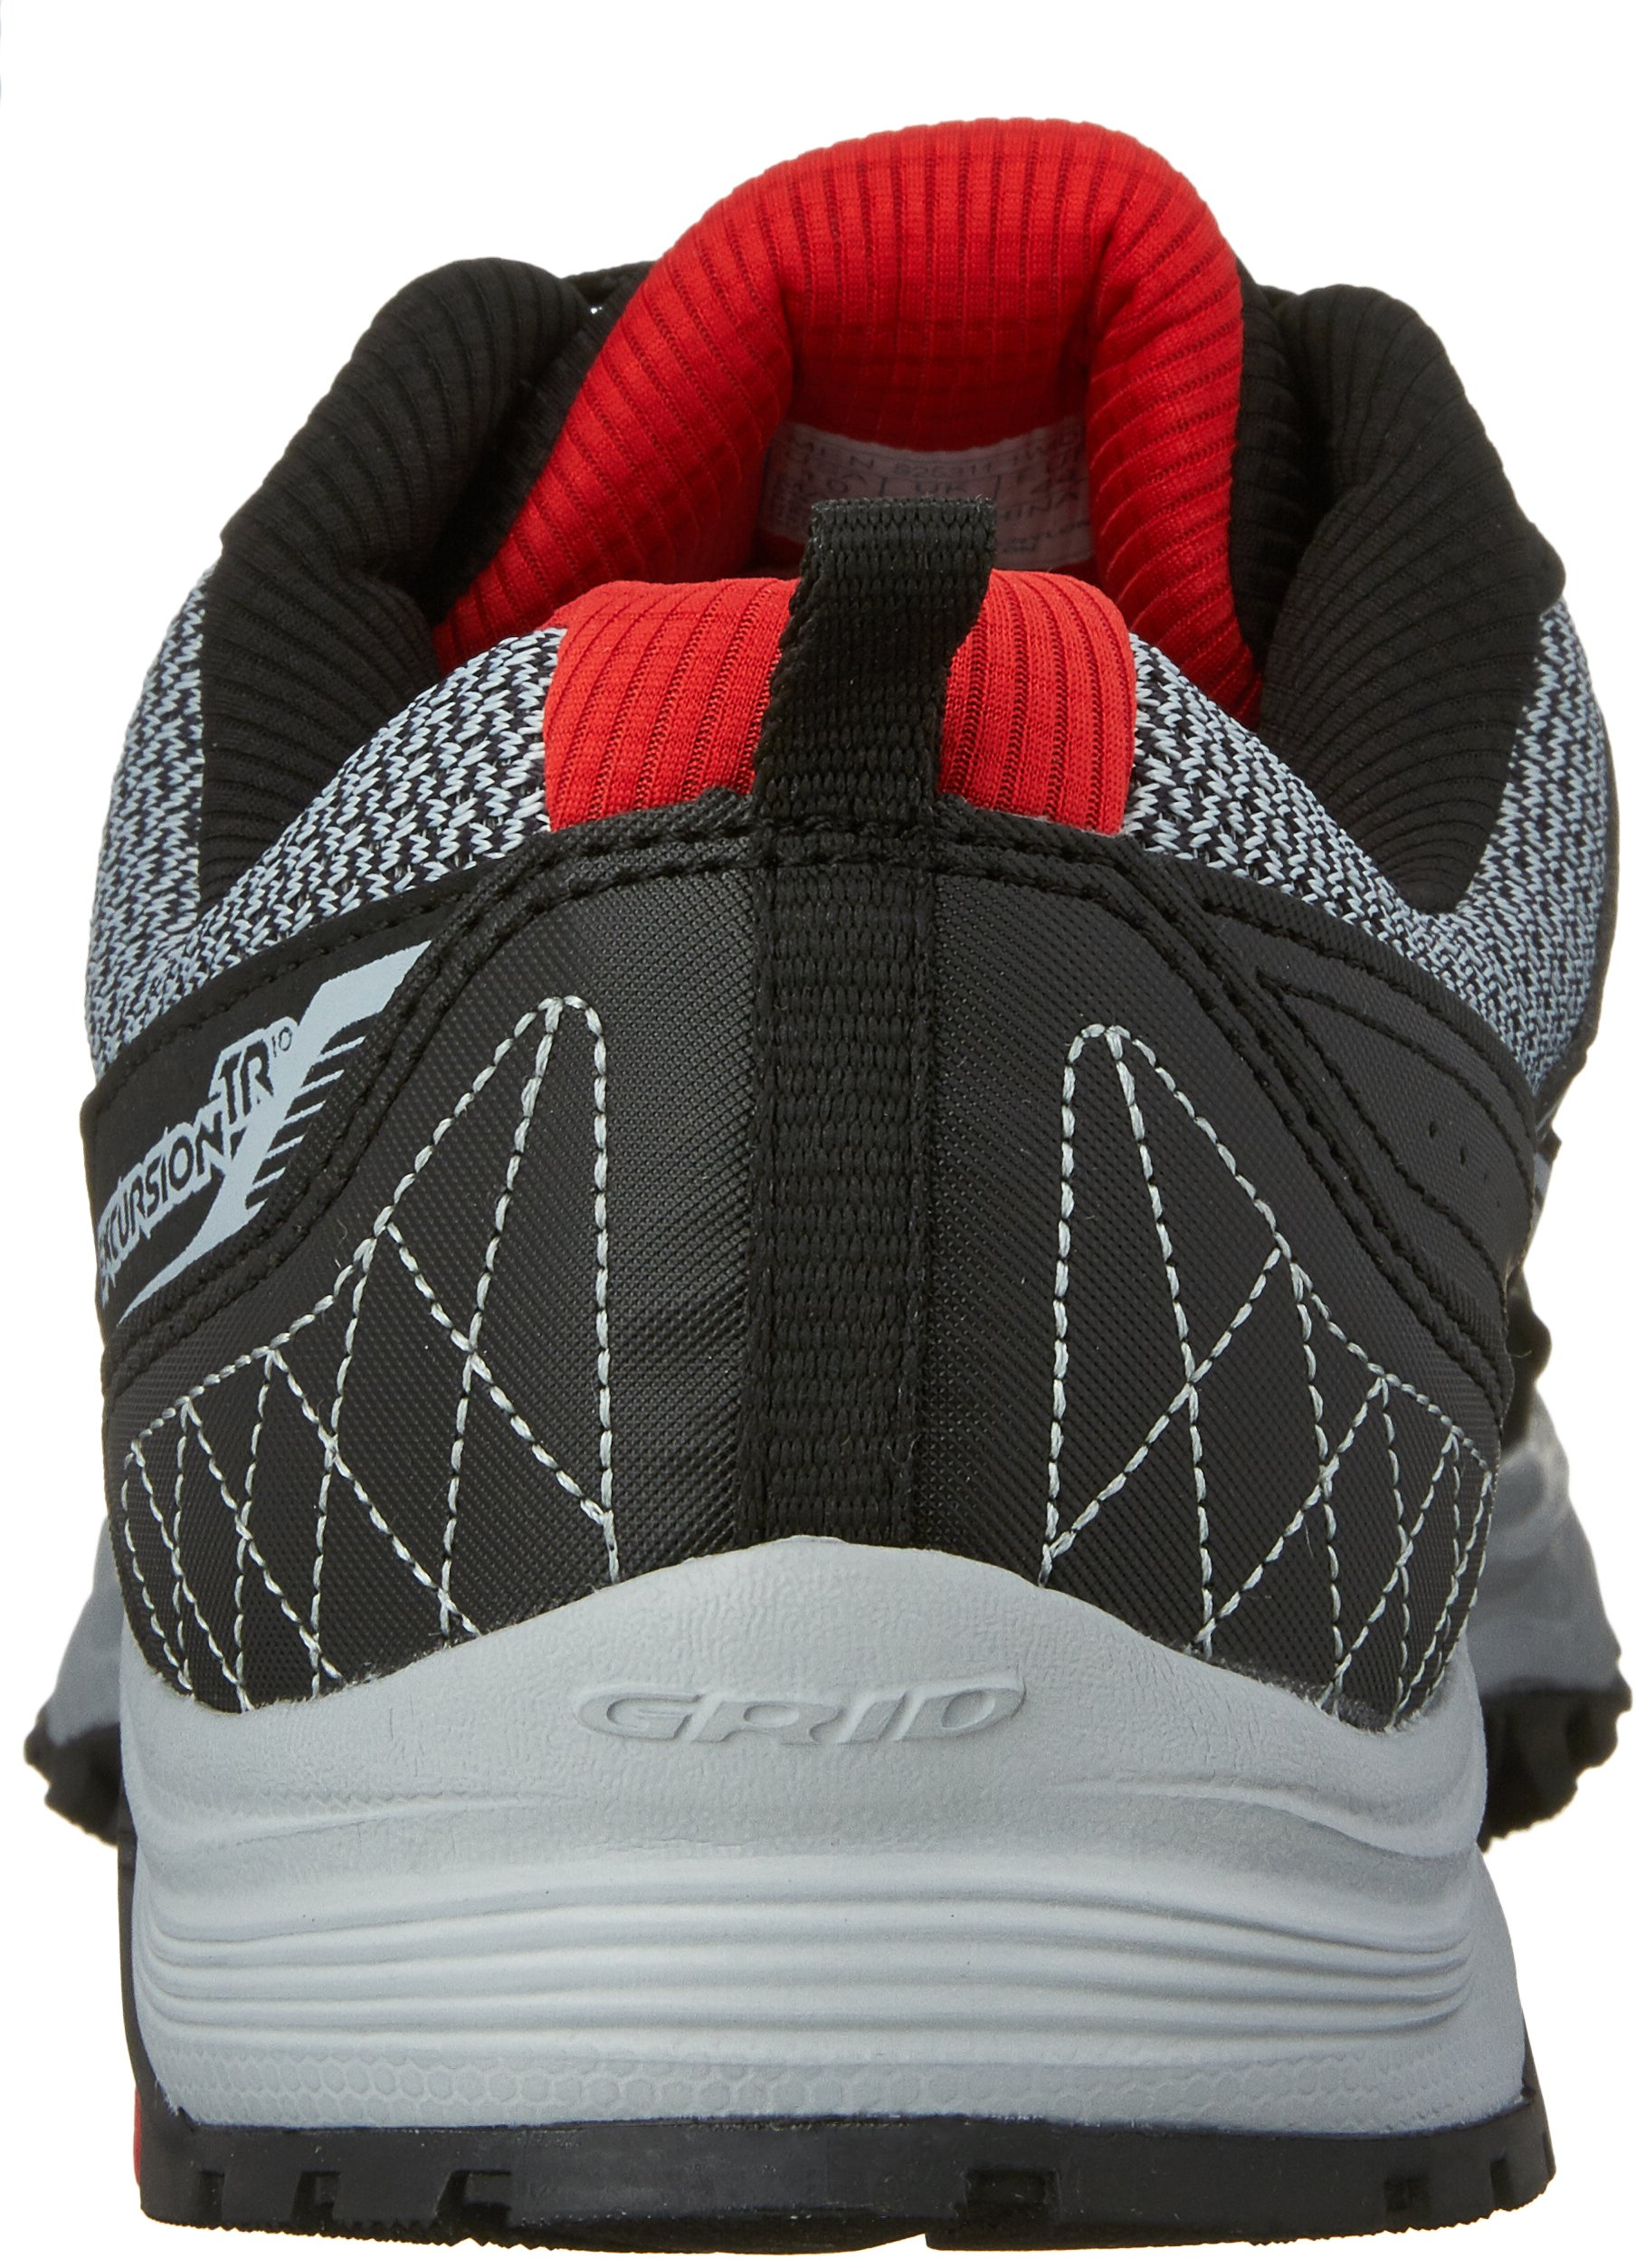 Saucony Excursion TR10 Wide Men 9 Grey | Black | Red by Saucony (Image #2)